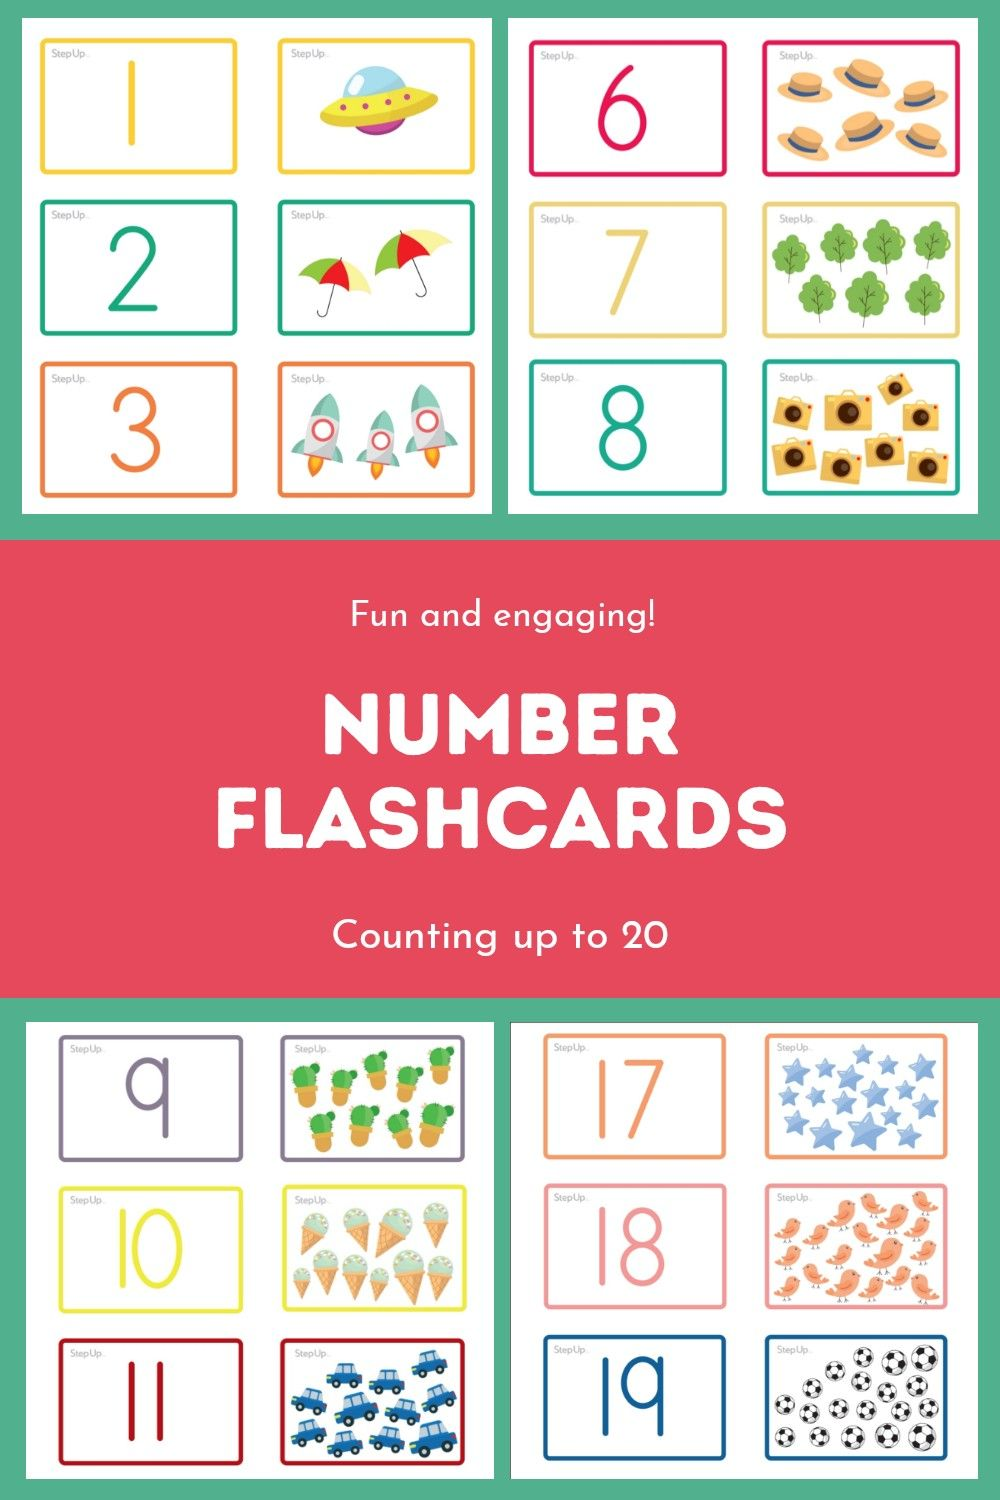 Counting Up To 20 Number Flashcards Flashcards Number Flashcards Math Coloring